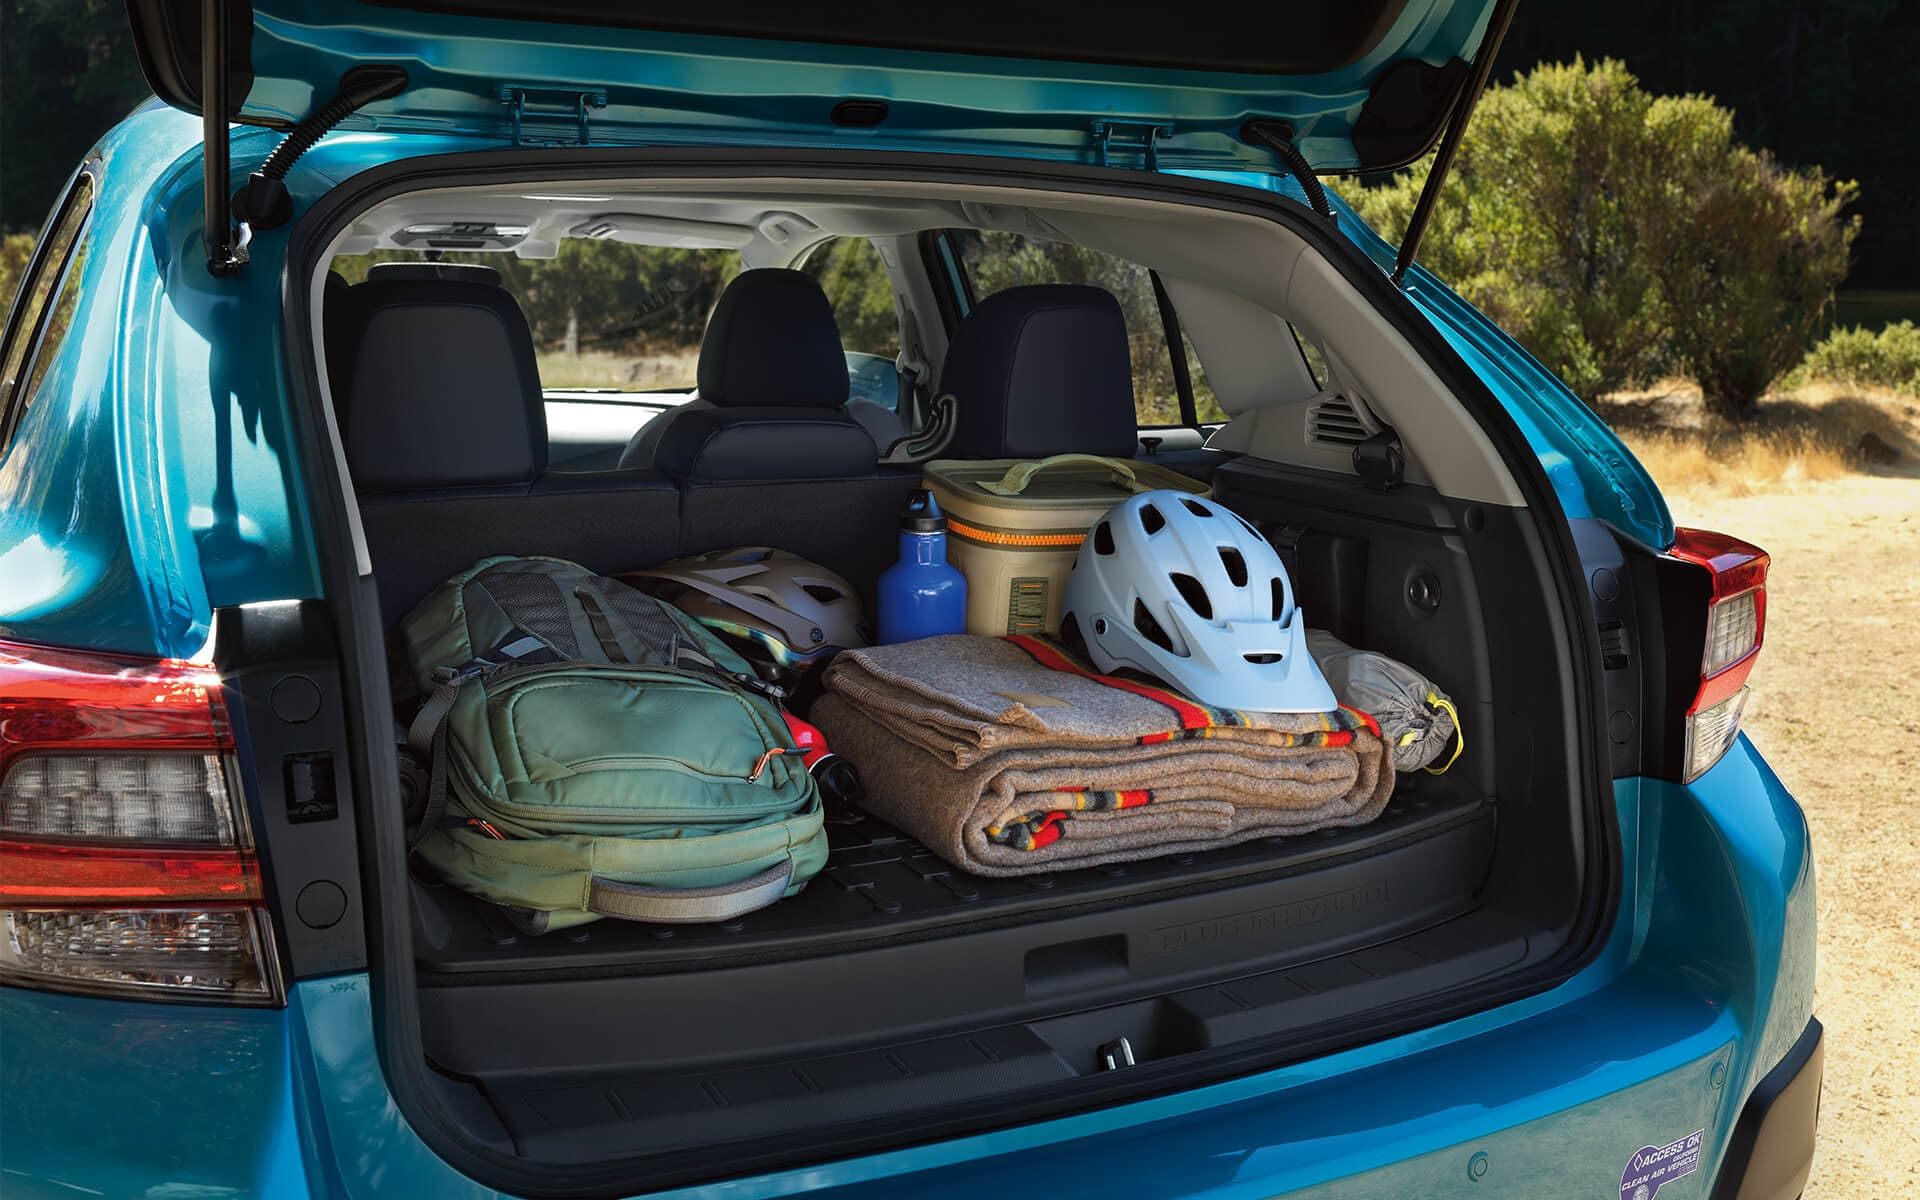 A view into the spacious cargo area of the 2020 Crosstrek Hybrid.